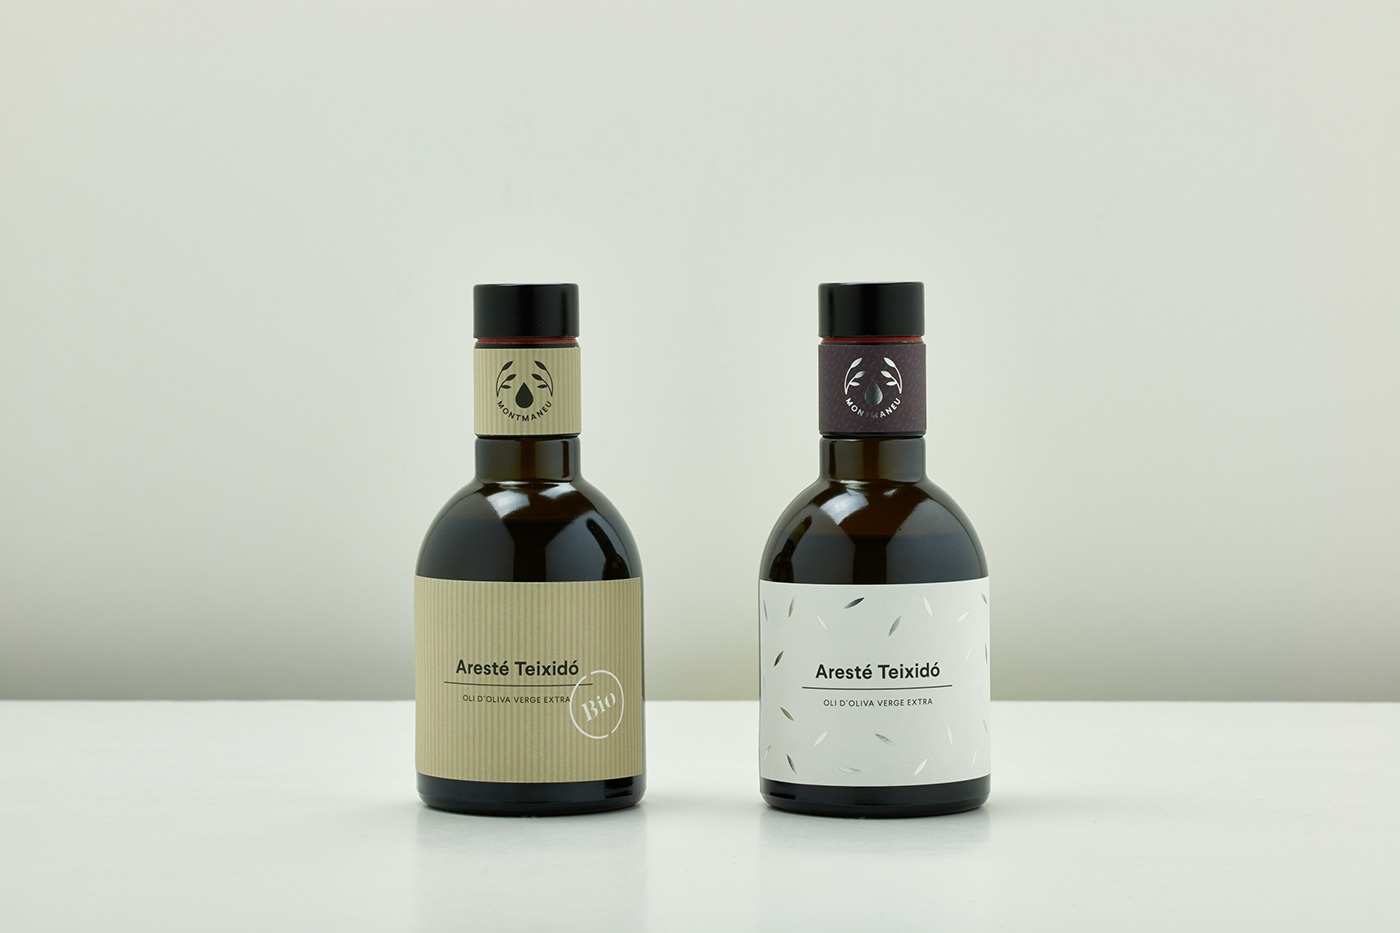 oil aceite verge Label Packaging stamping olive oliva